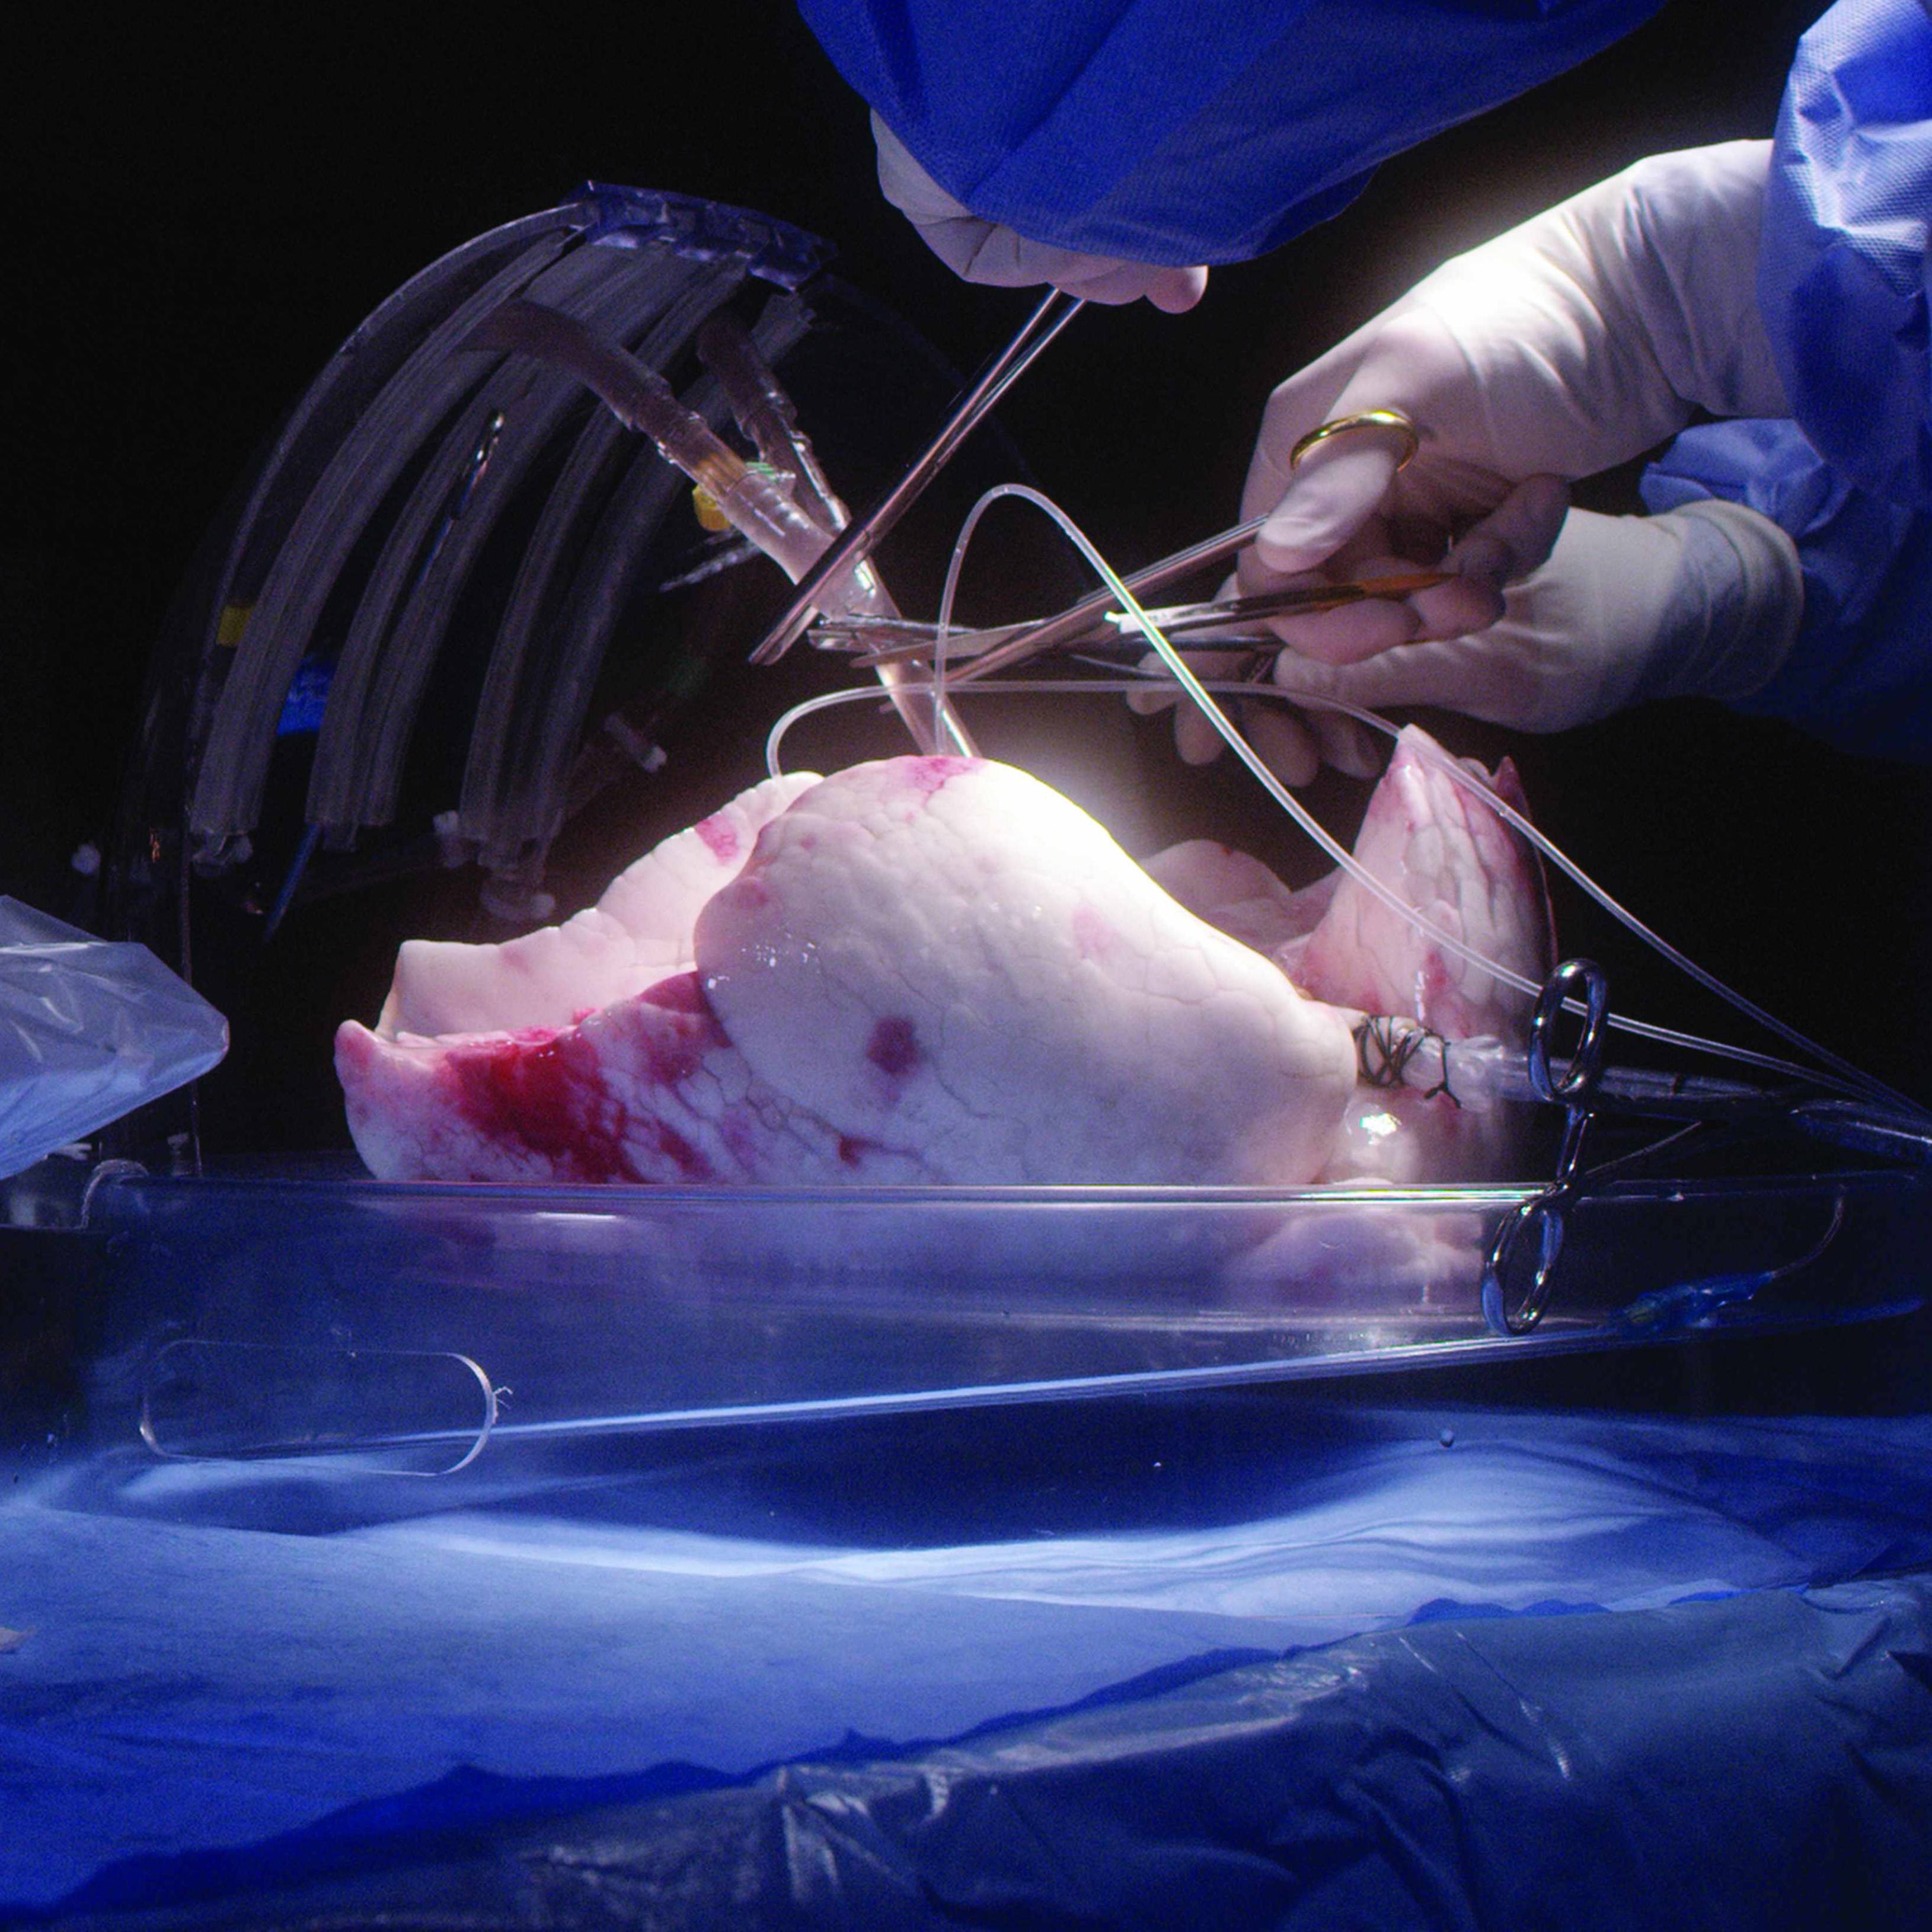 Ex vivo lung perfusion in surgery